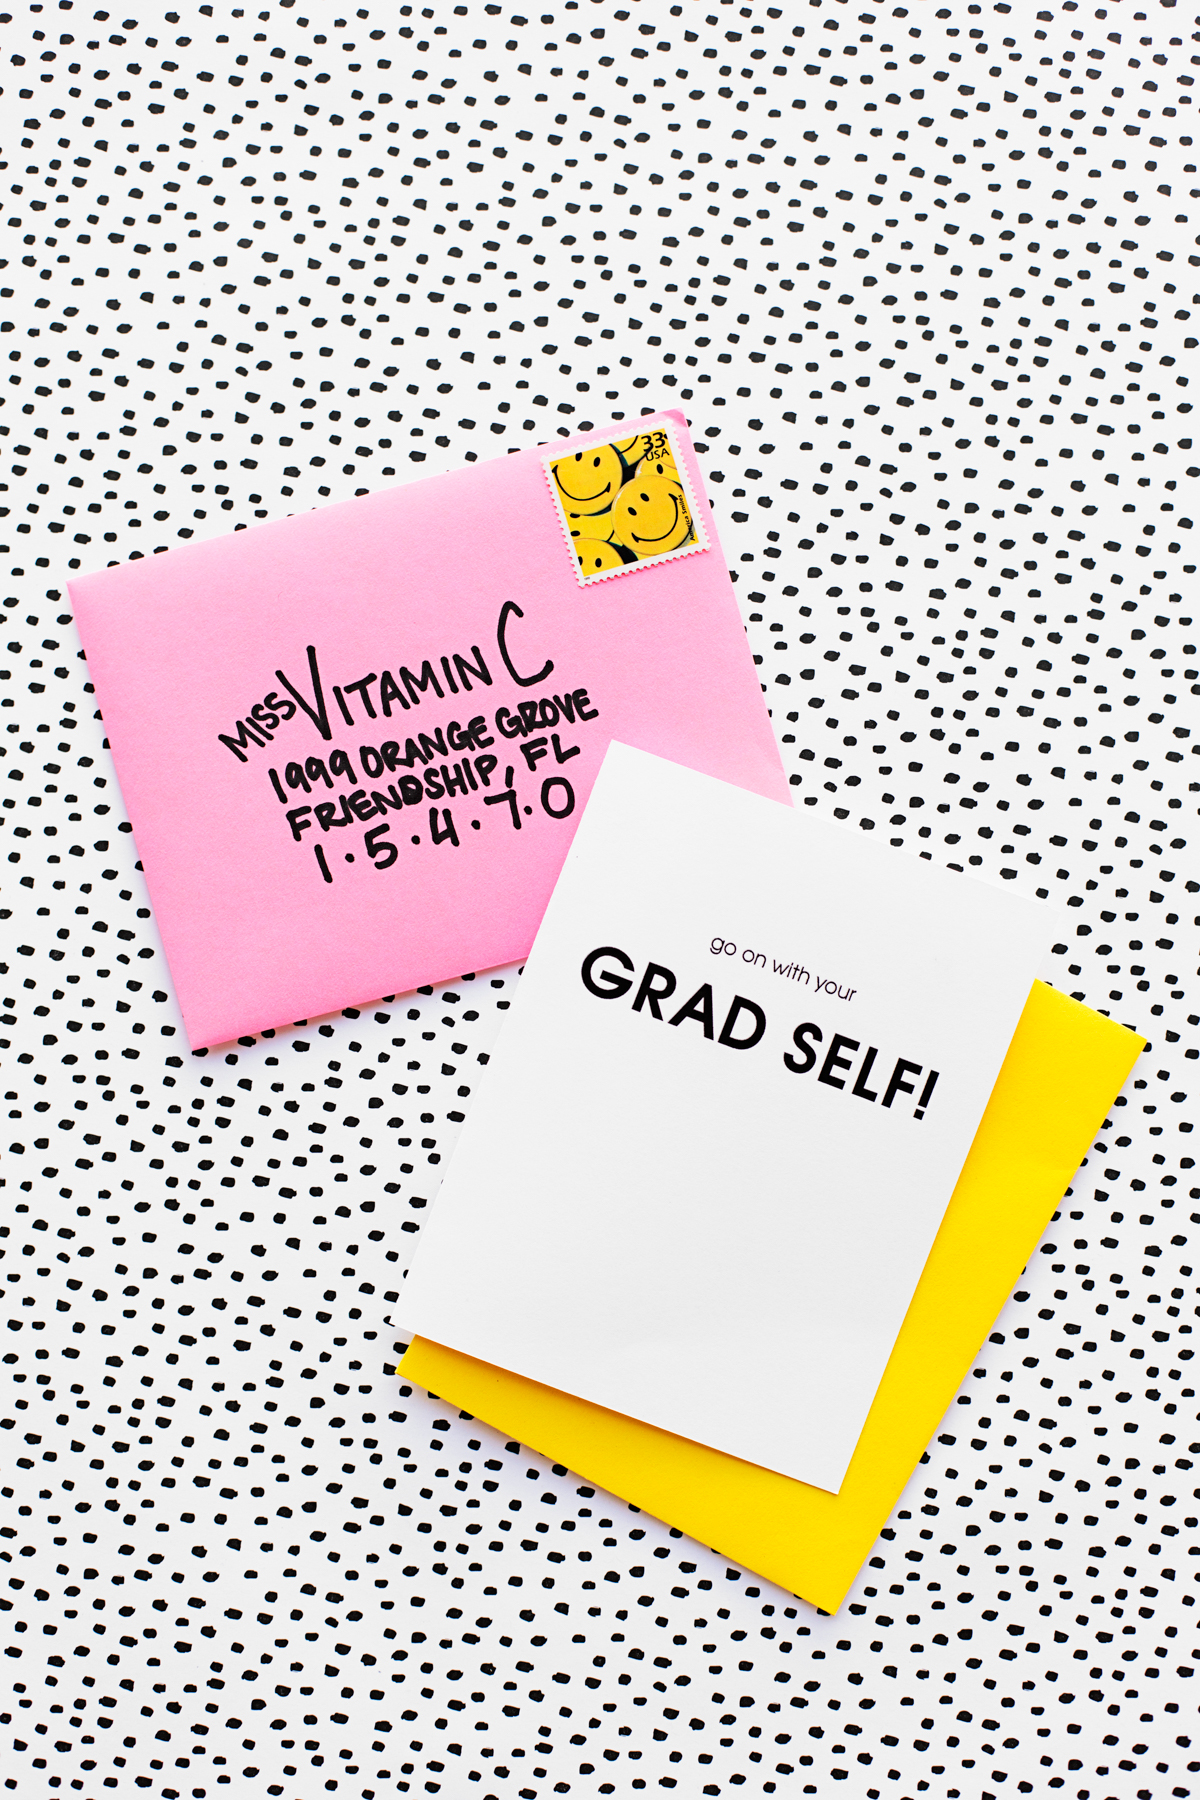 image about Graduation Cards Printable titled Welcome toward Adulthood: Free of charge Printable Commencement Playing cards